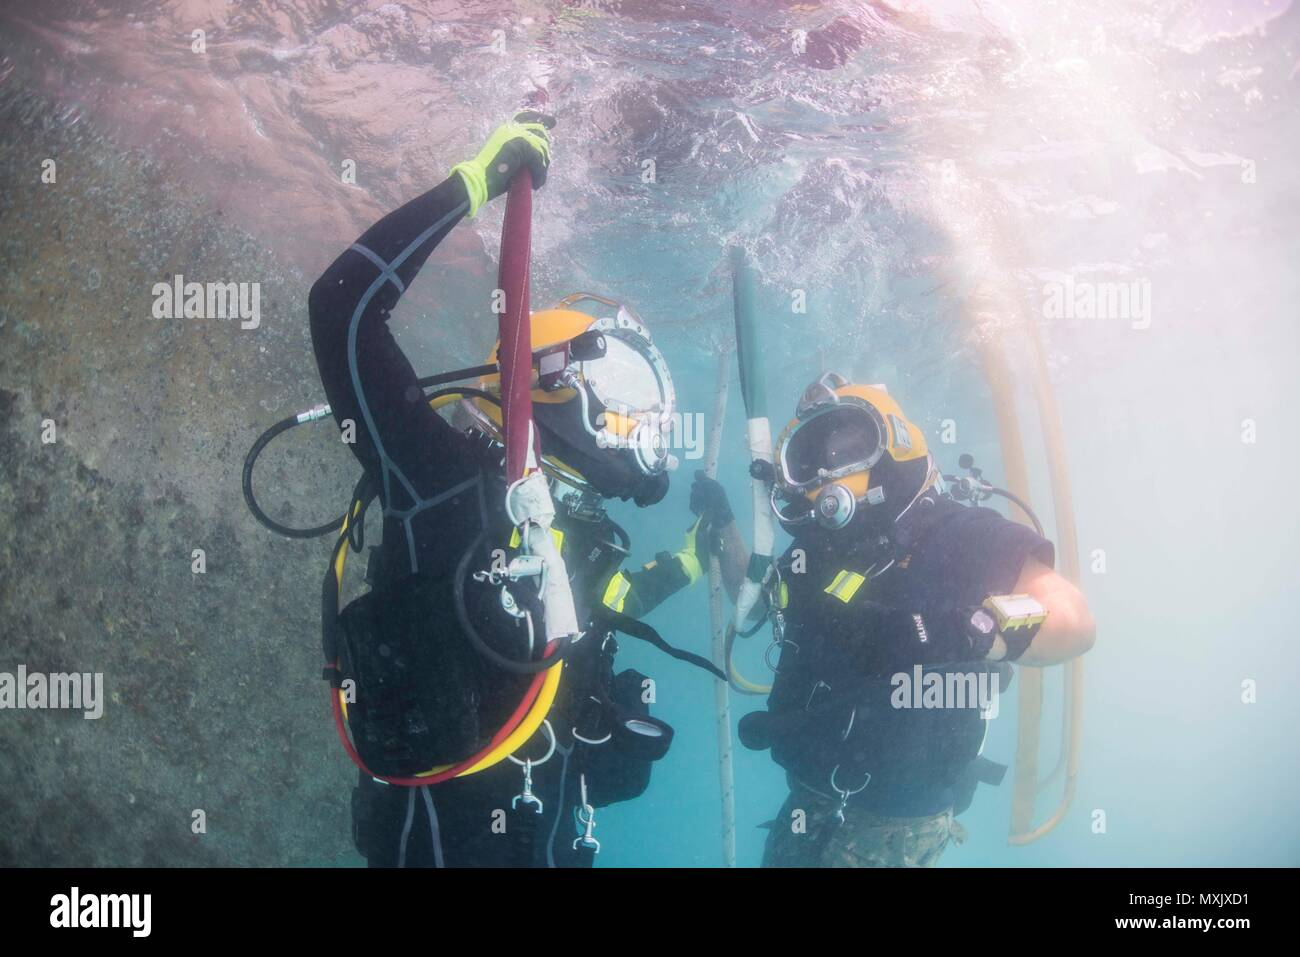 Chief Petty Officer Jesse Hamblin, left, and Petty Officer 2nd Class Aaron Brown, both assigned to Underwater Construction Team (UCT) 2's Construction Dive Detachment Bravo (CDDB), conduct diving operations in Diego Garcia, British Indian Ocean Territory, Nov. 8, 2016.  CDDB is performing precision underwater demolition and light salvage to remove obstructions from Diego Garcia's deep draft wharf. CDDB is on the third stop of their deployment, where they are conducting inspection, maintenance, and repair of various underwater and waterfront facilities while under Commander, Task Force (CTF) 75 Stock Photo